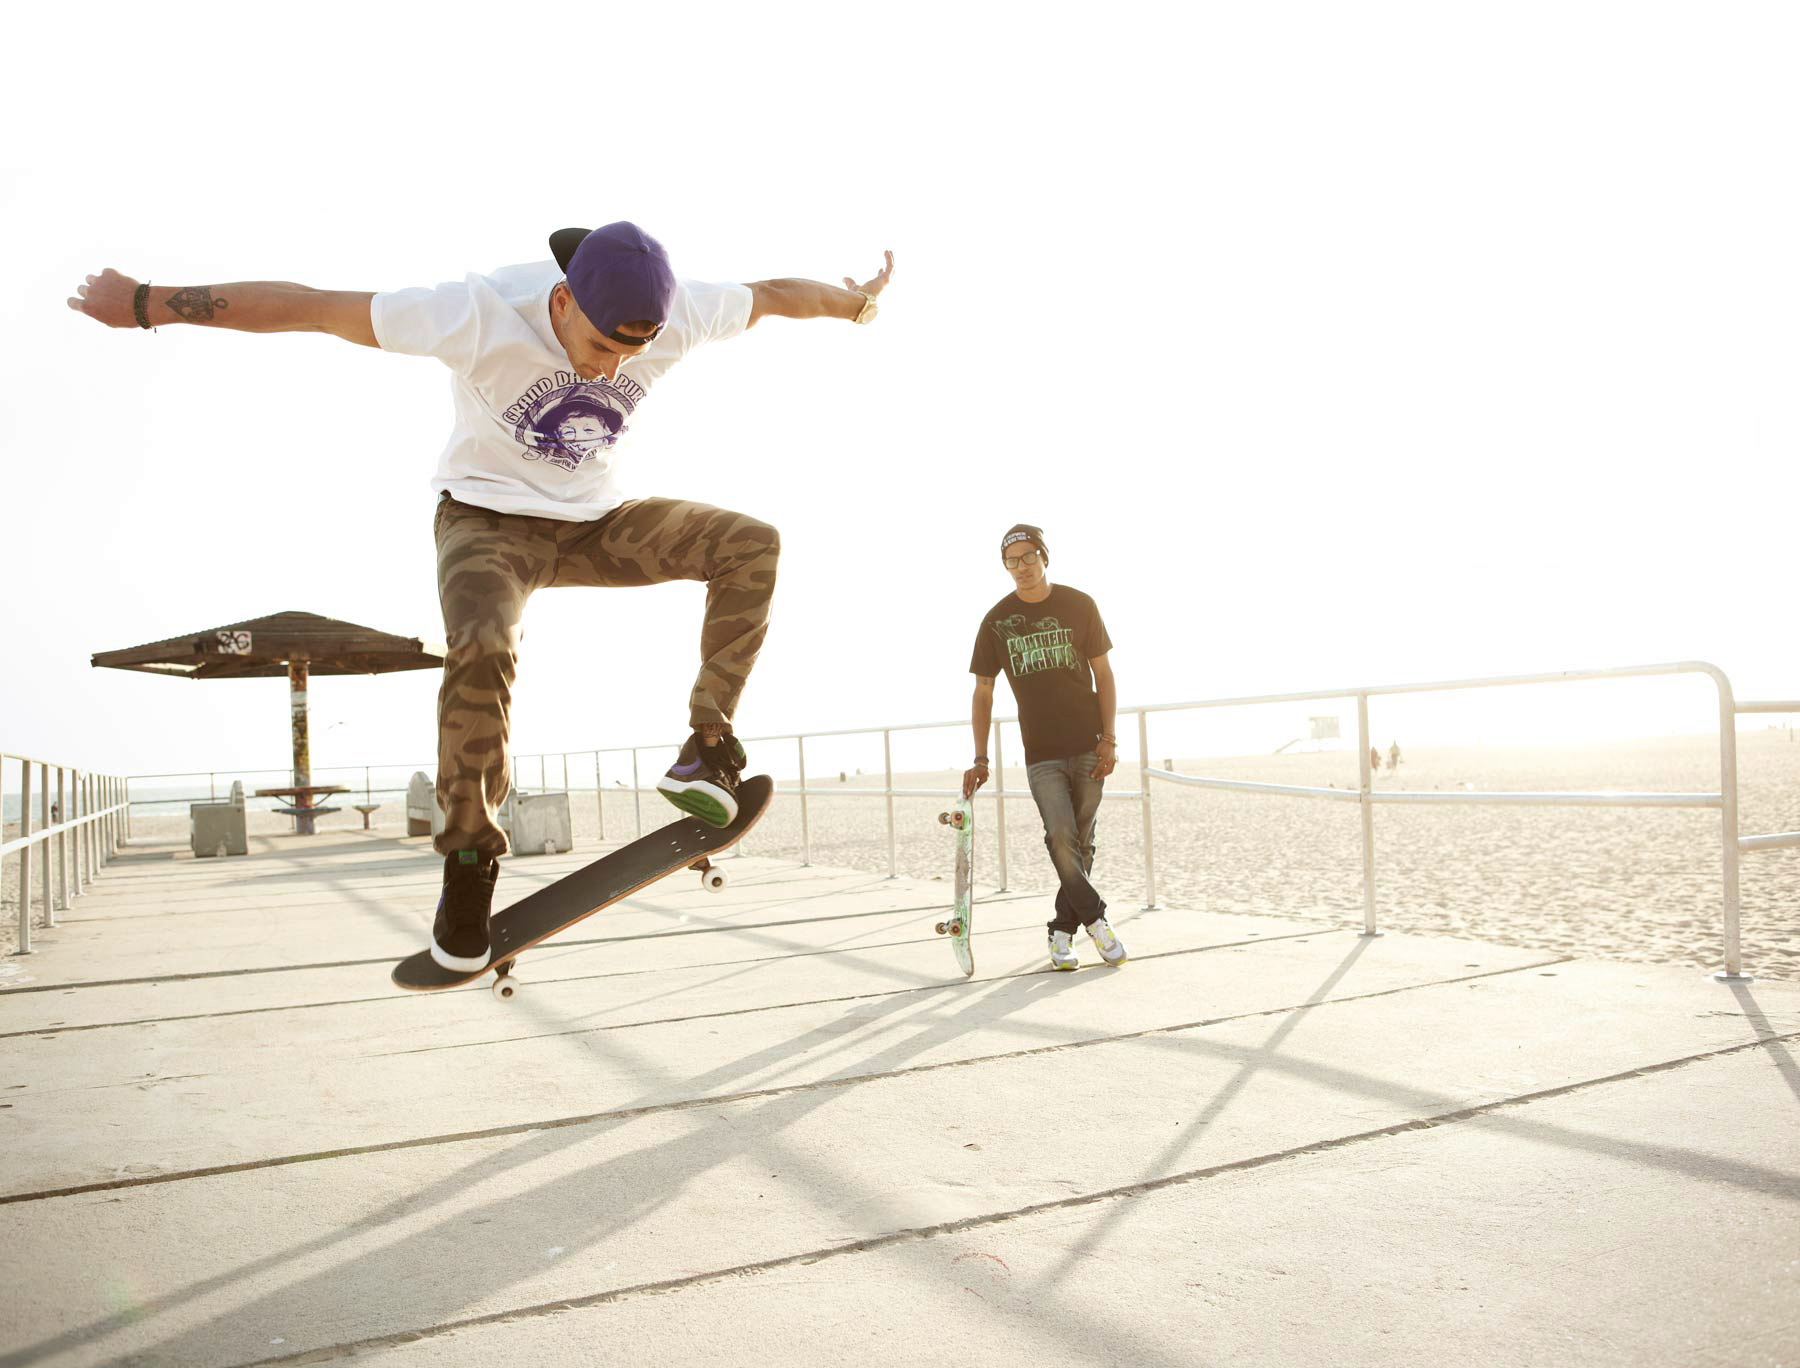 FF_Edgy_Beach_Lifestyle_Photographer_Los_Angeles_California_Skater_Beach_Advertising_Photo_Skateboard_Sun_Flare_Mike_Henry_photo_Chicacgo_LA